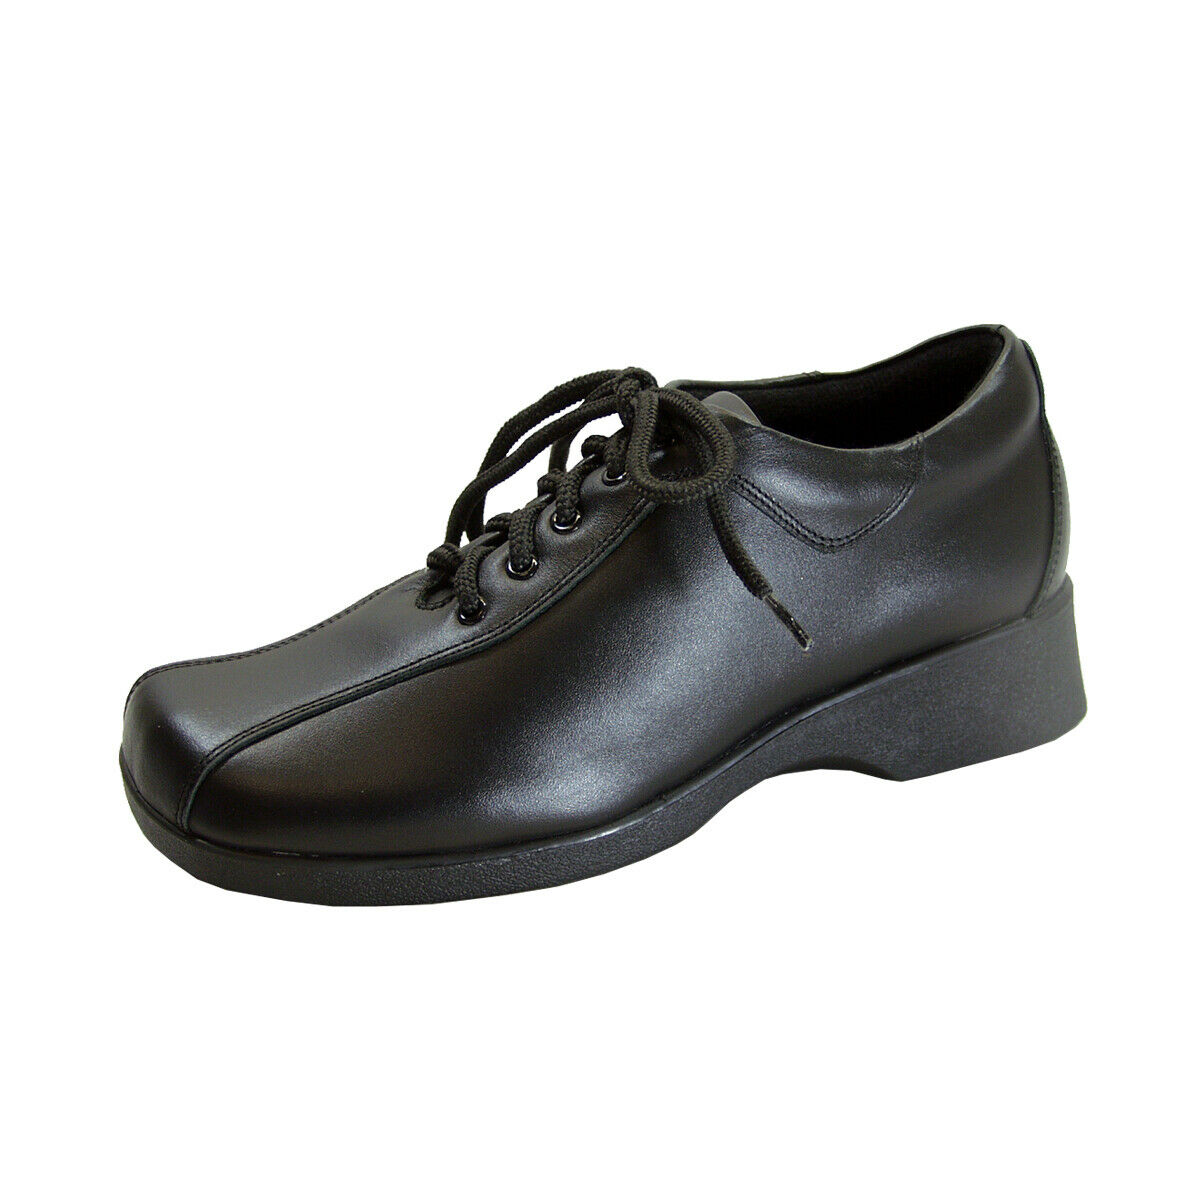 24 HOUR COMFORT Caprice Wide Width Leather Lace-Up Shoes BLACK 8.5